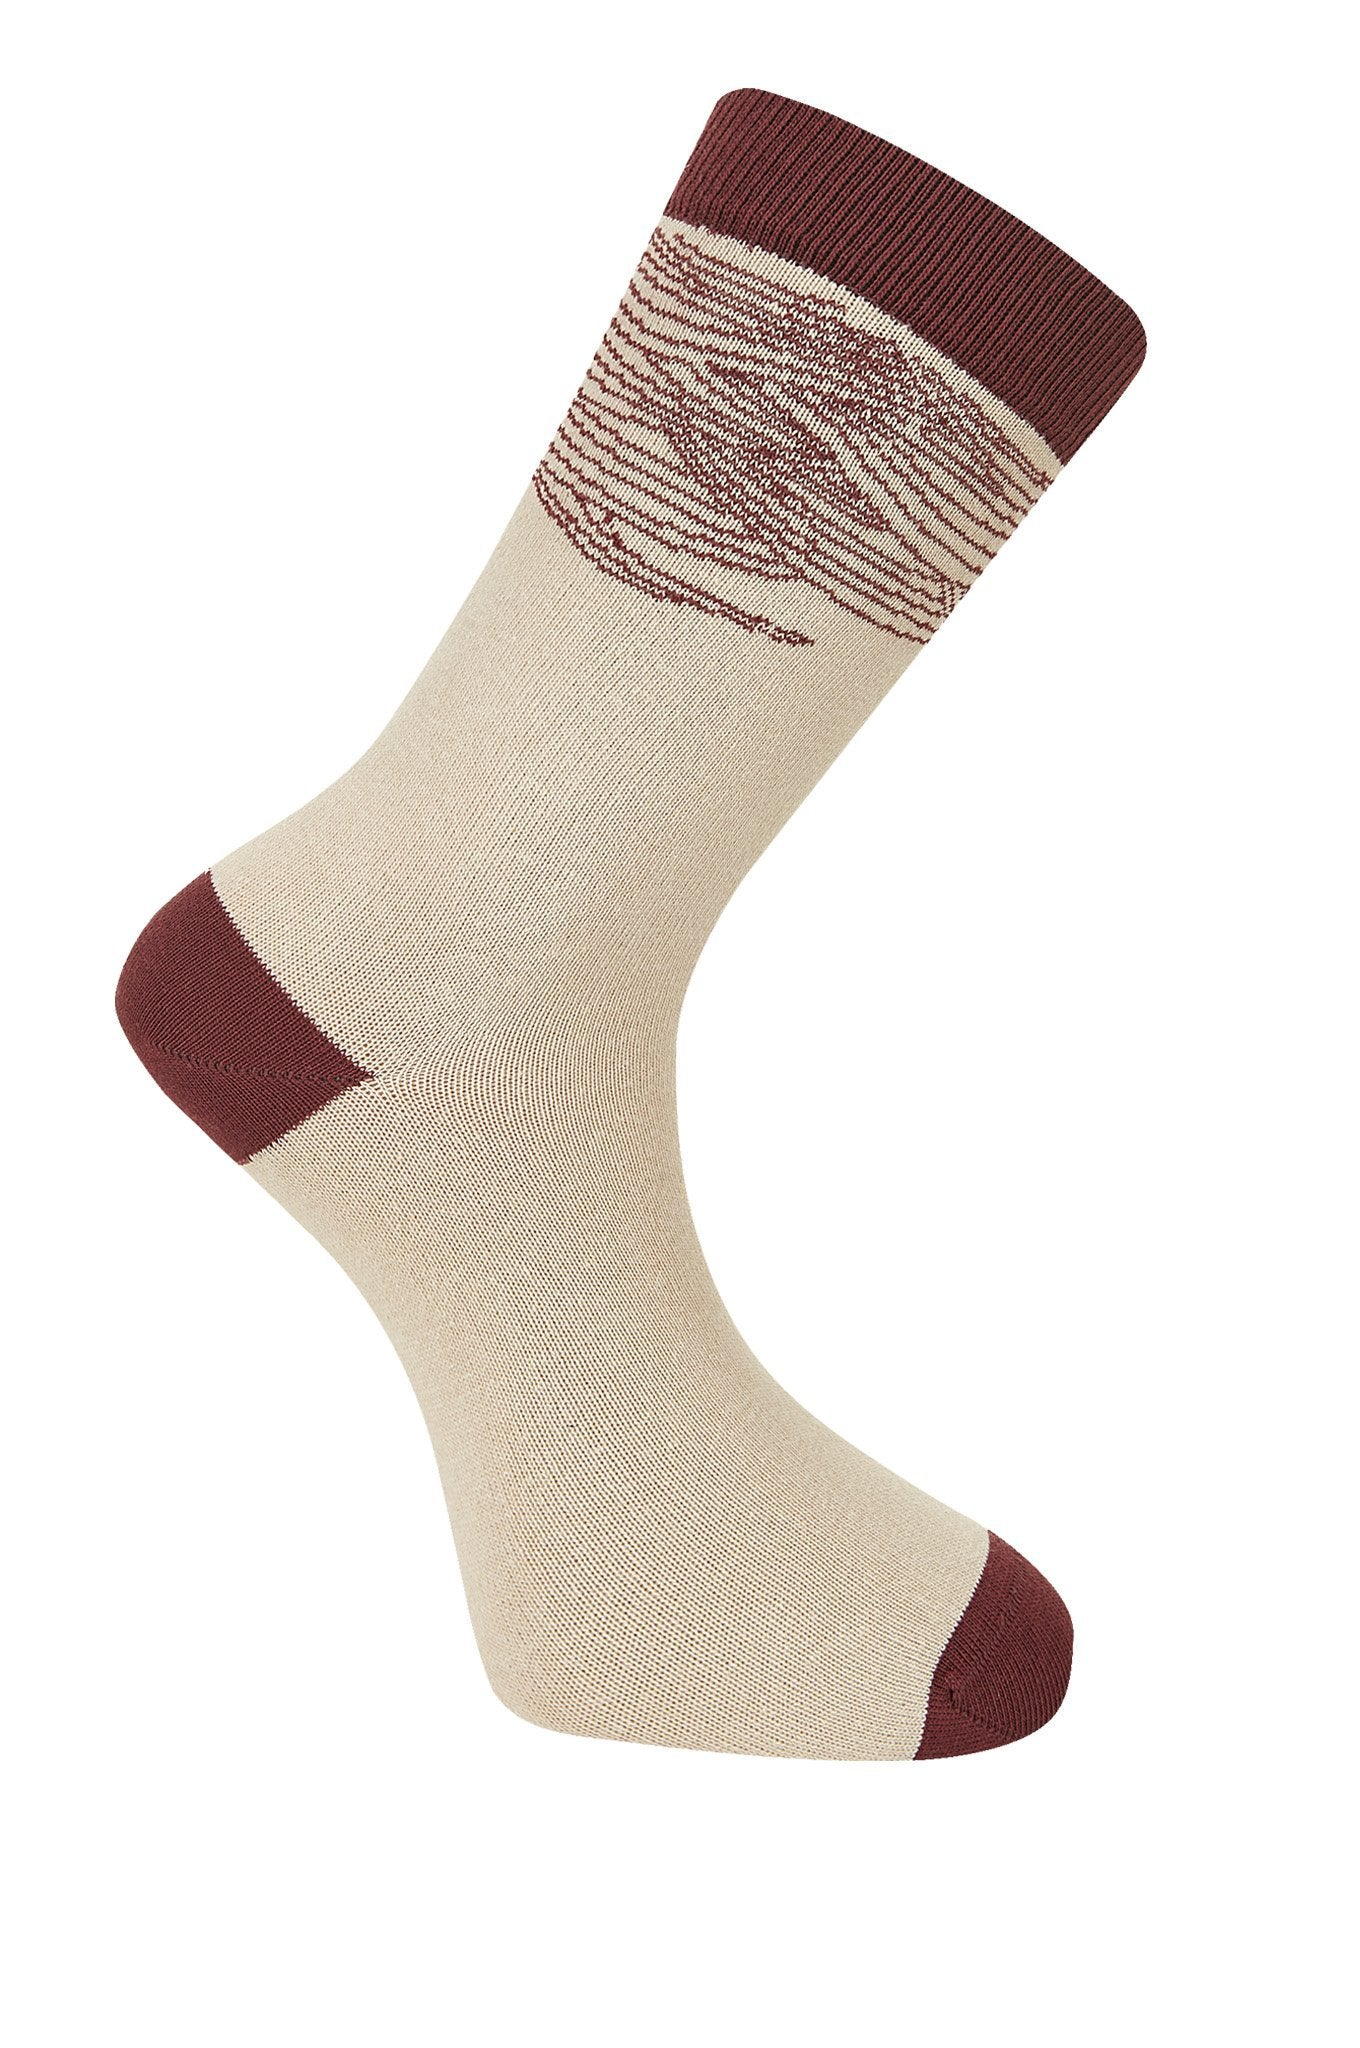 WAVE Camel Organic Cotton Socks - Komodo Fashion